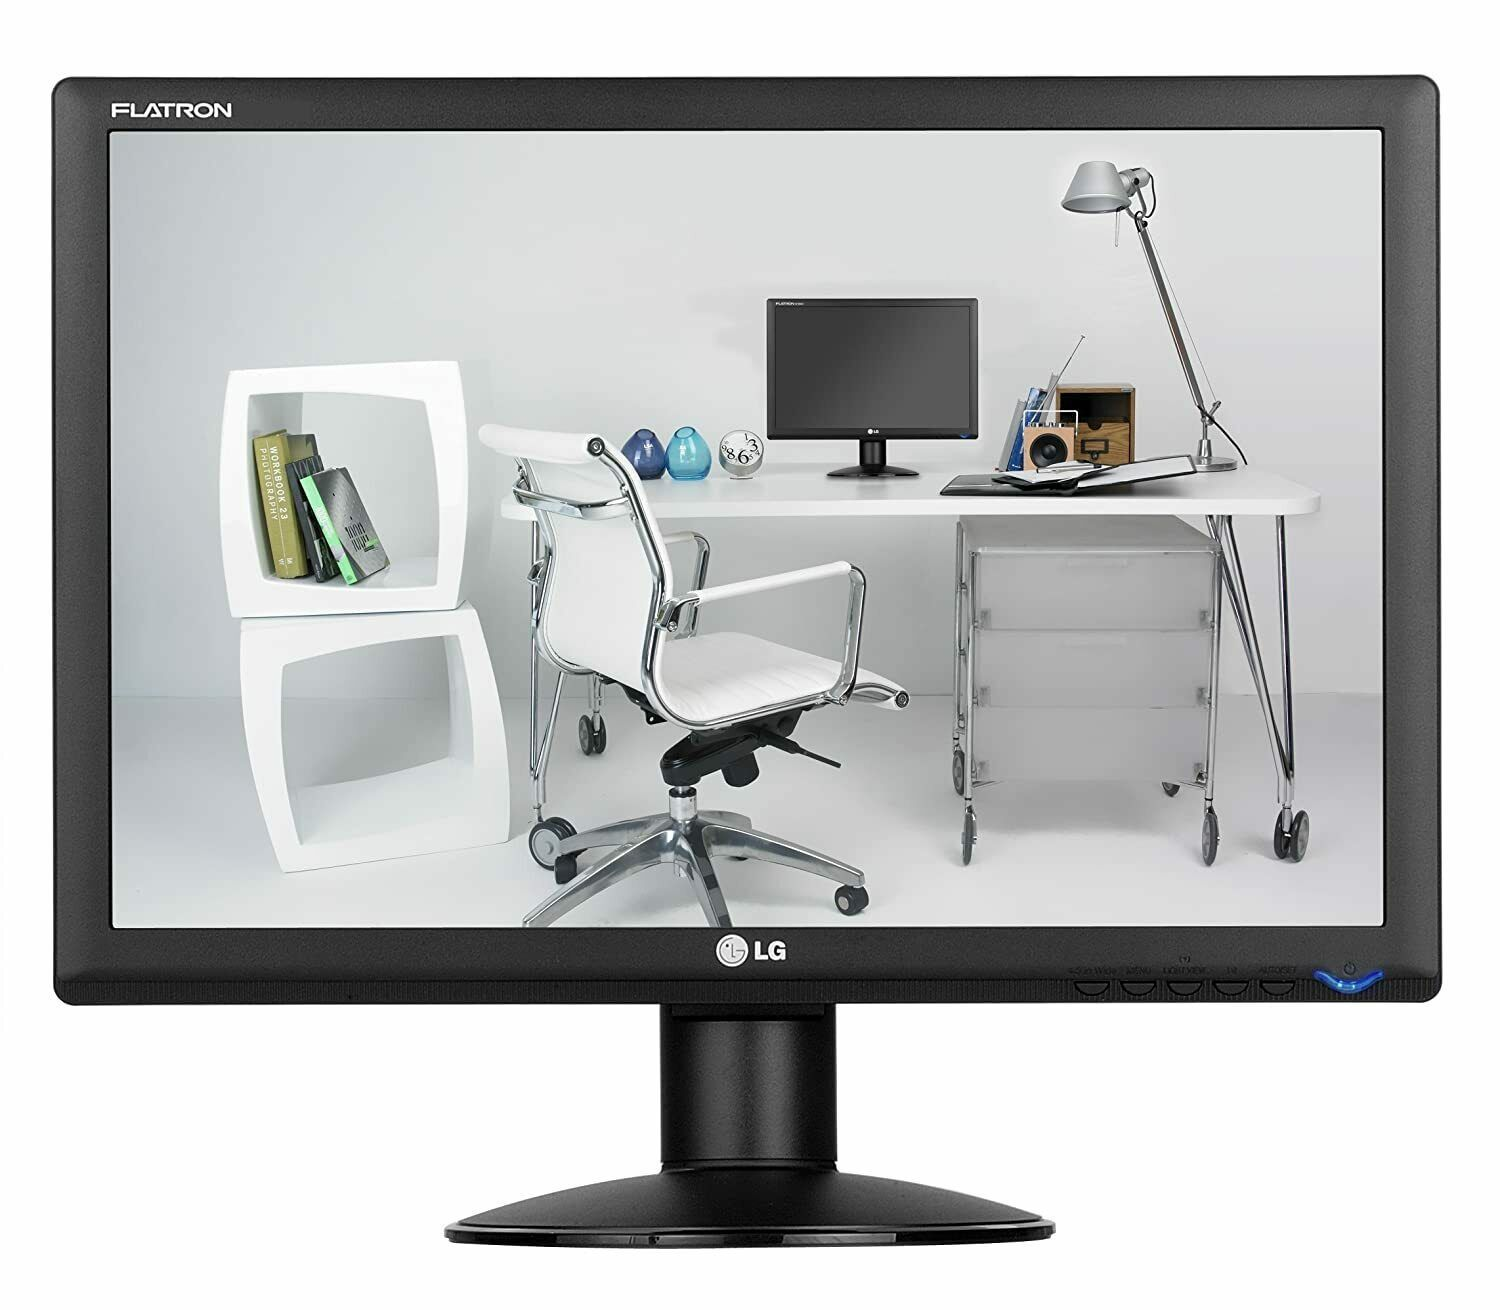 "Primary image for LG W1934S 19"" inch Widescreen 1000:1 5ms LCD Monitor, LG W1934S 19 Wide LCD"